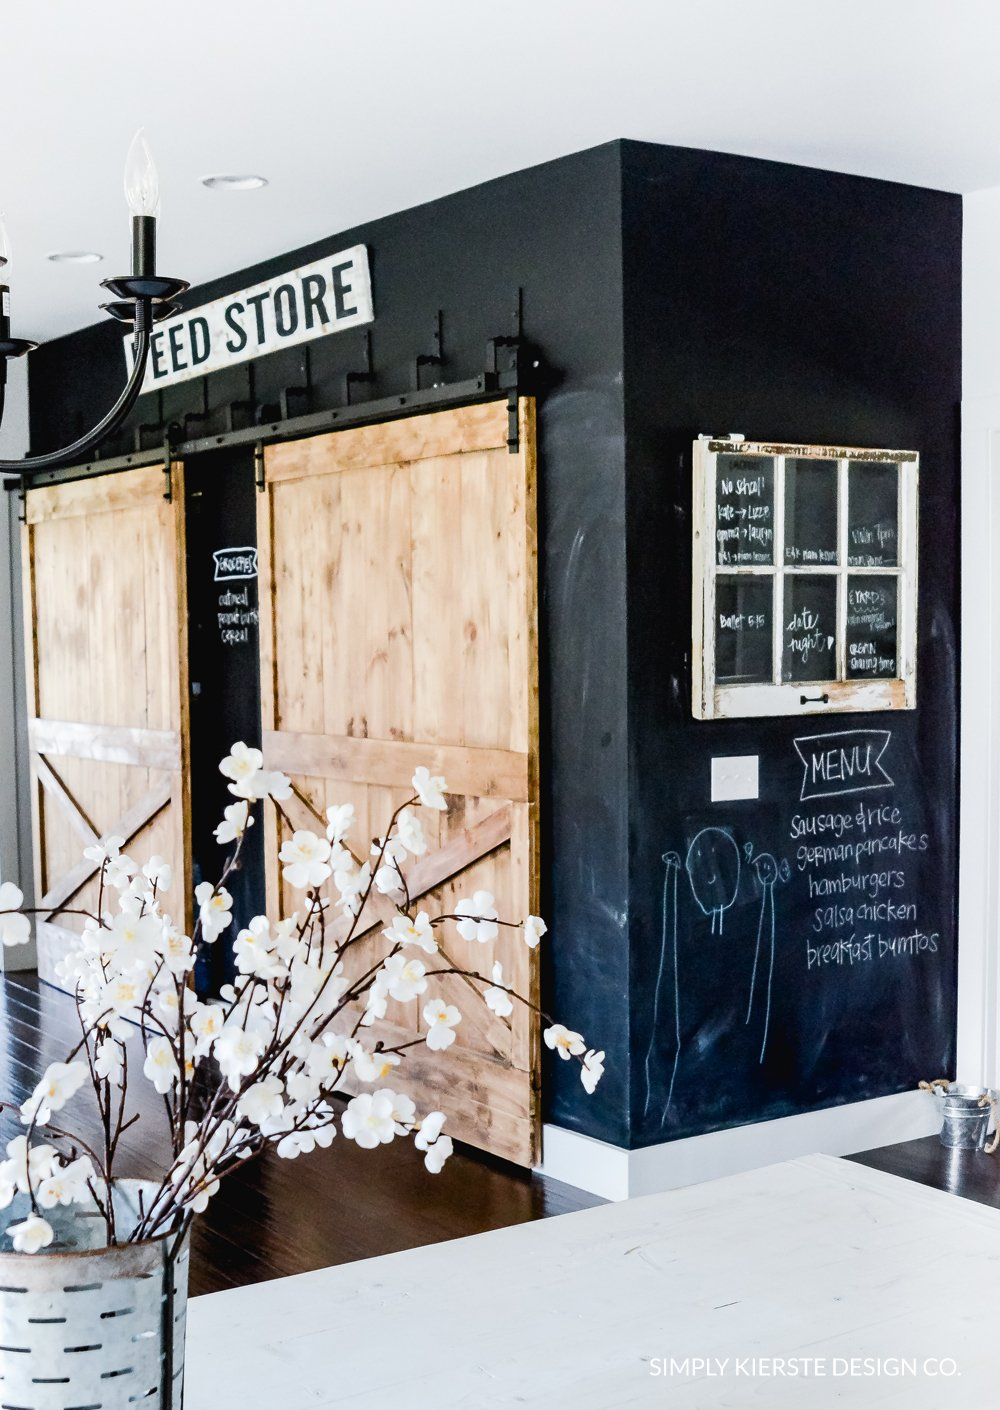 Why I Love My Chalkboard Wall | Simply Kierste Design Co.